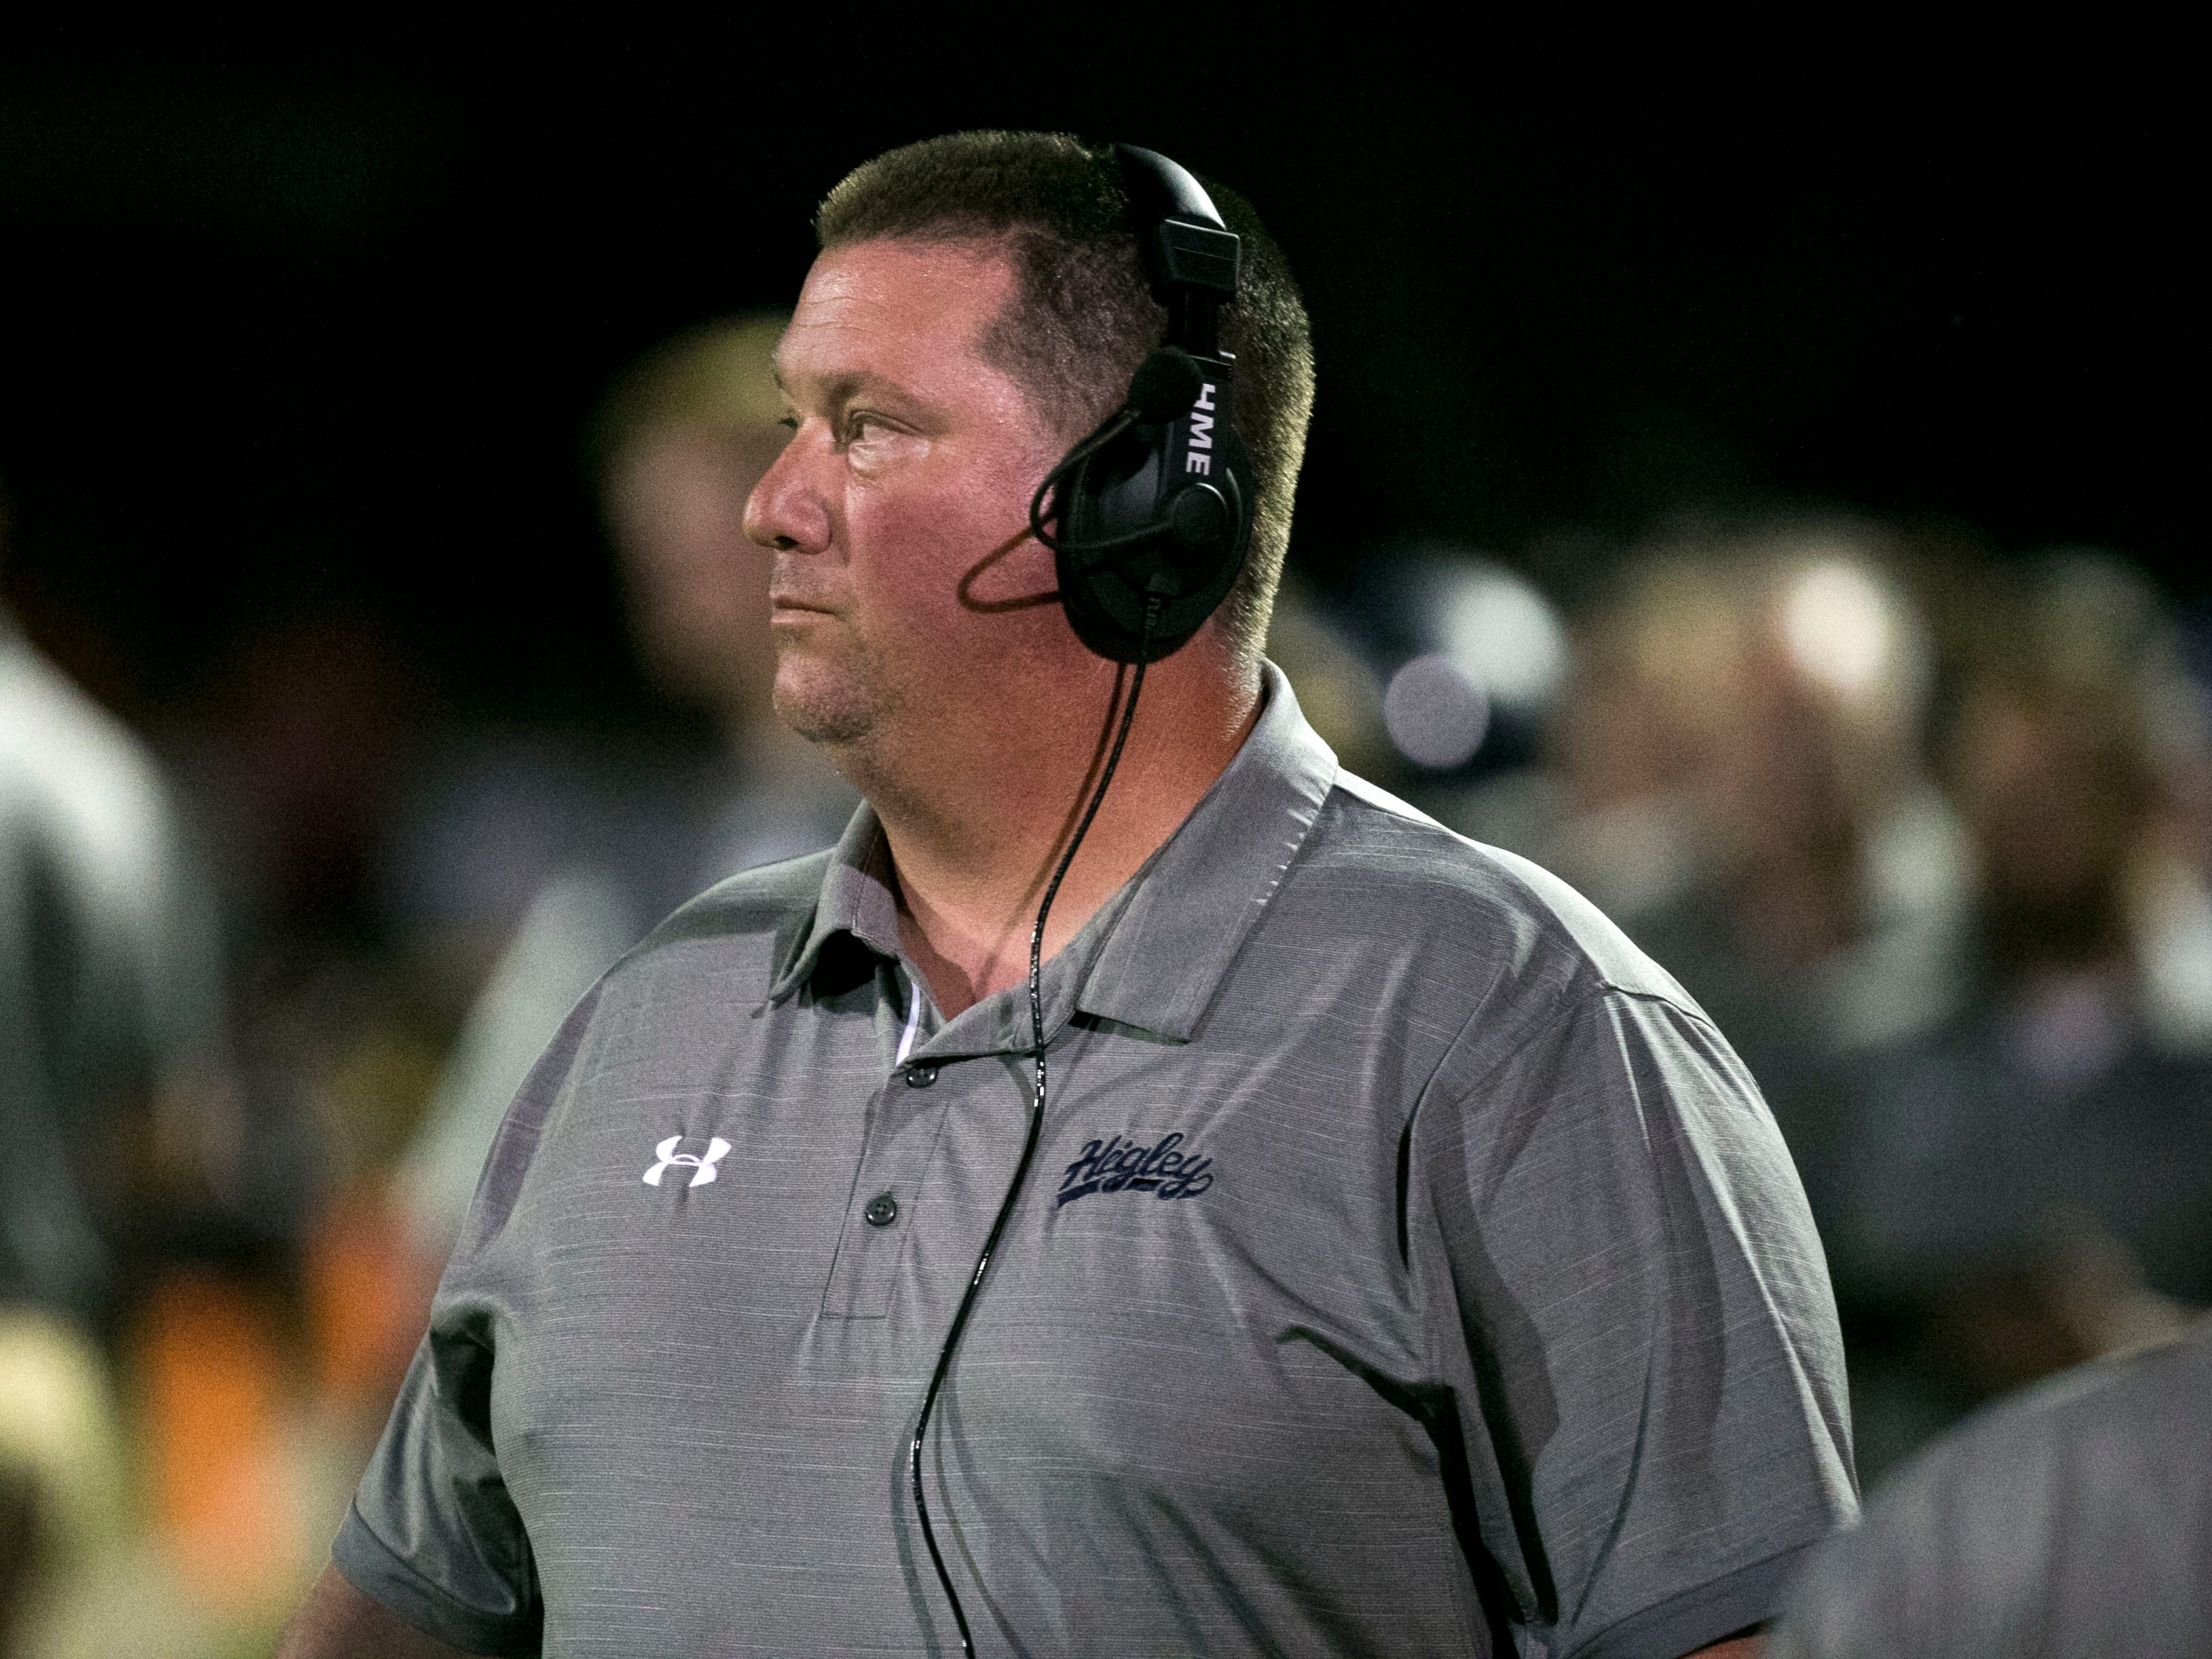 Higley High head football coach Eddy Zubey during the first quarter of the high school football game against Millennium High at Higley High in Gilbert on Friday evening, September 14, 2018.